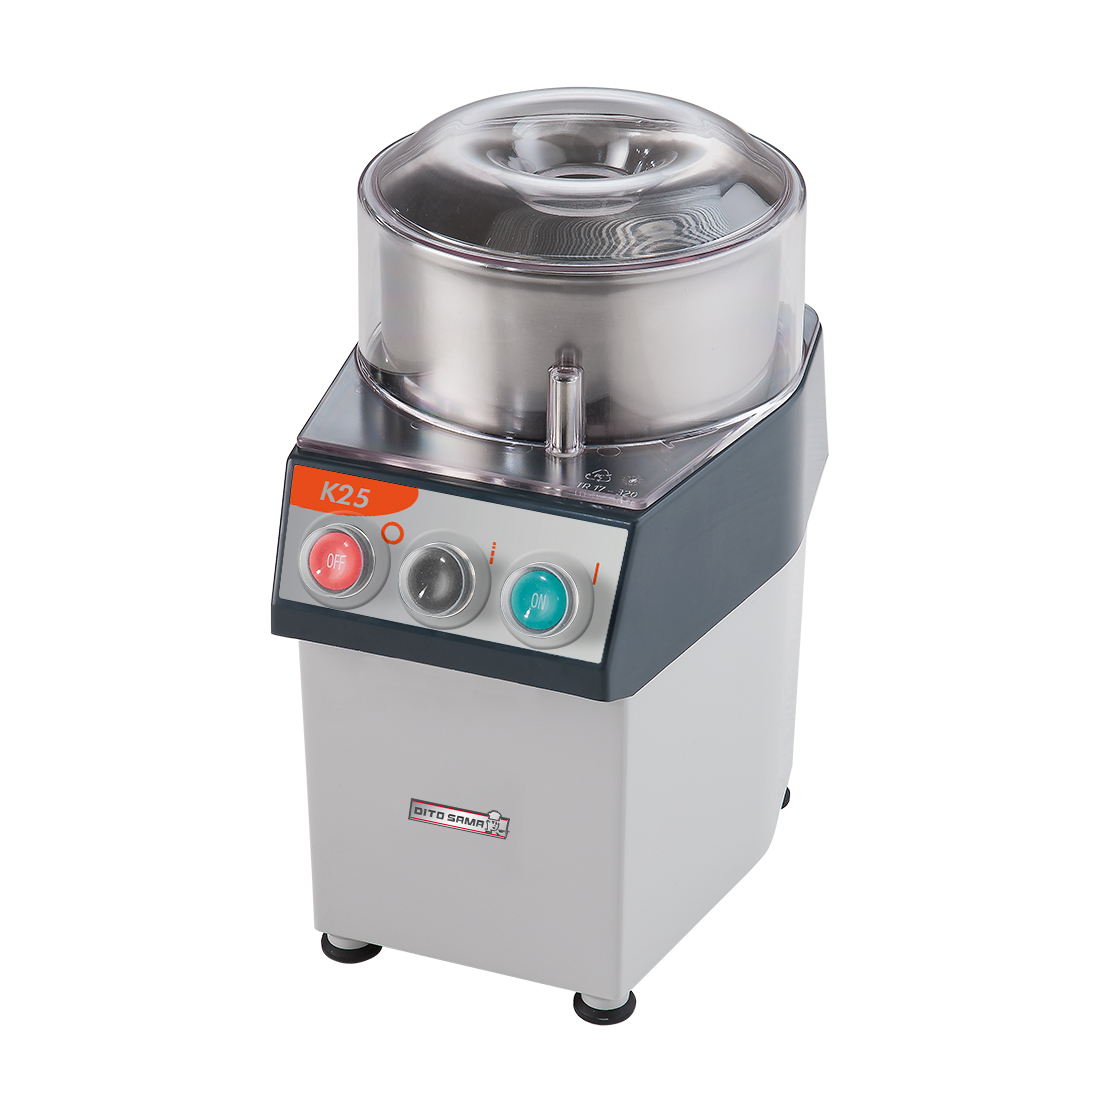 Dito Sama Food processor 2.5 litre single speed 370w - K25